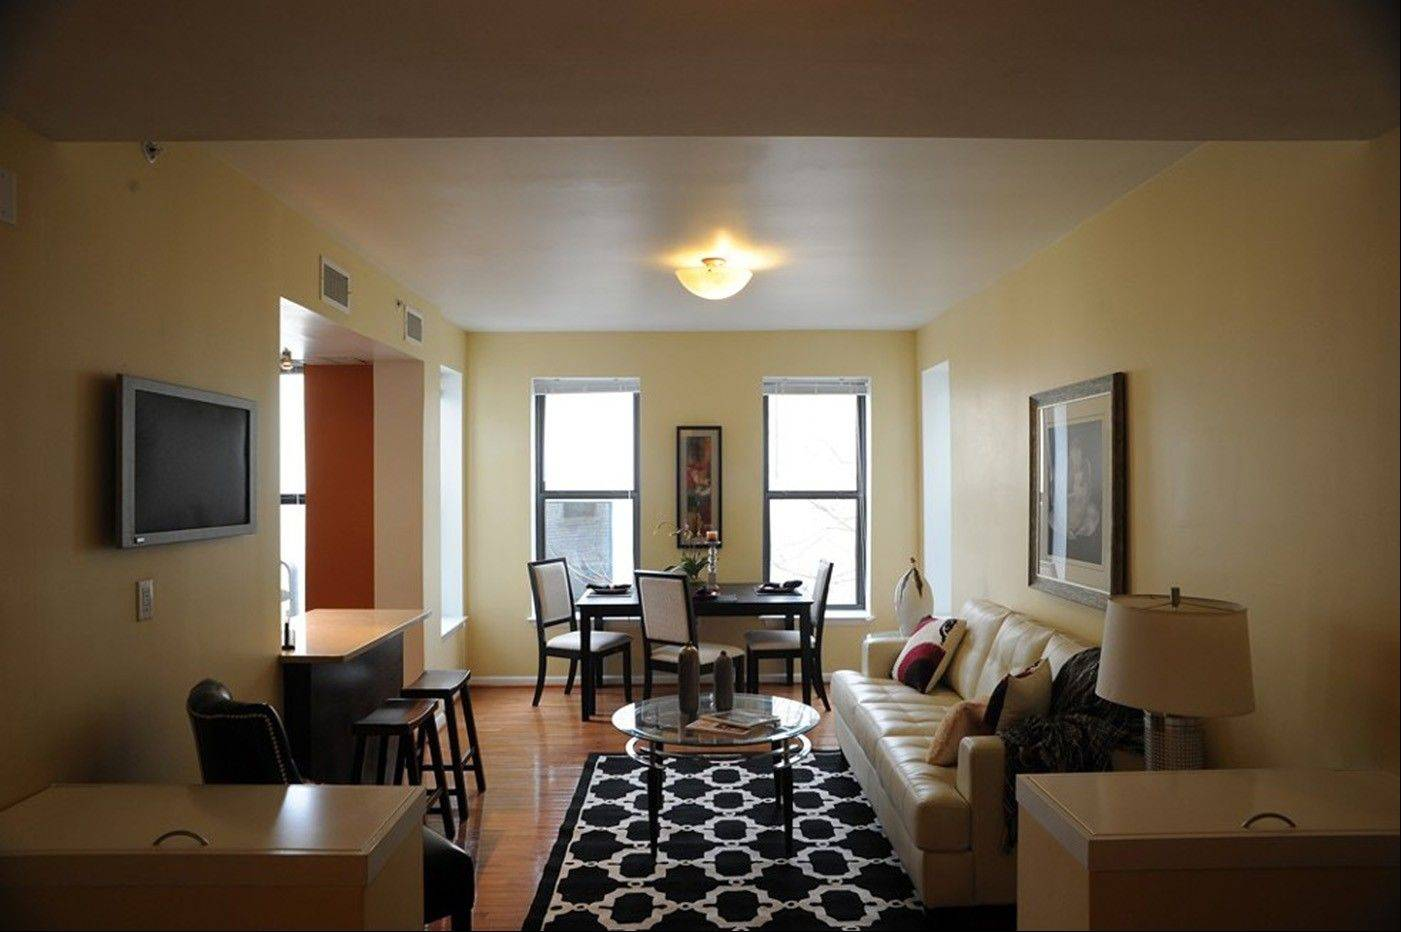 Chris French�s vacant condo in Washington, D.C., was staged to be more appealing to potential buyers using furniture and other items from New Vision Staging & Design.